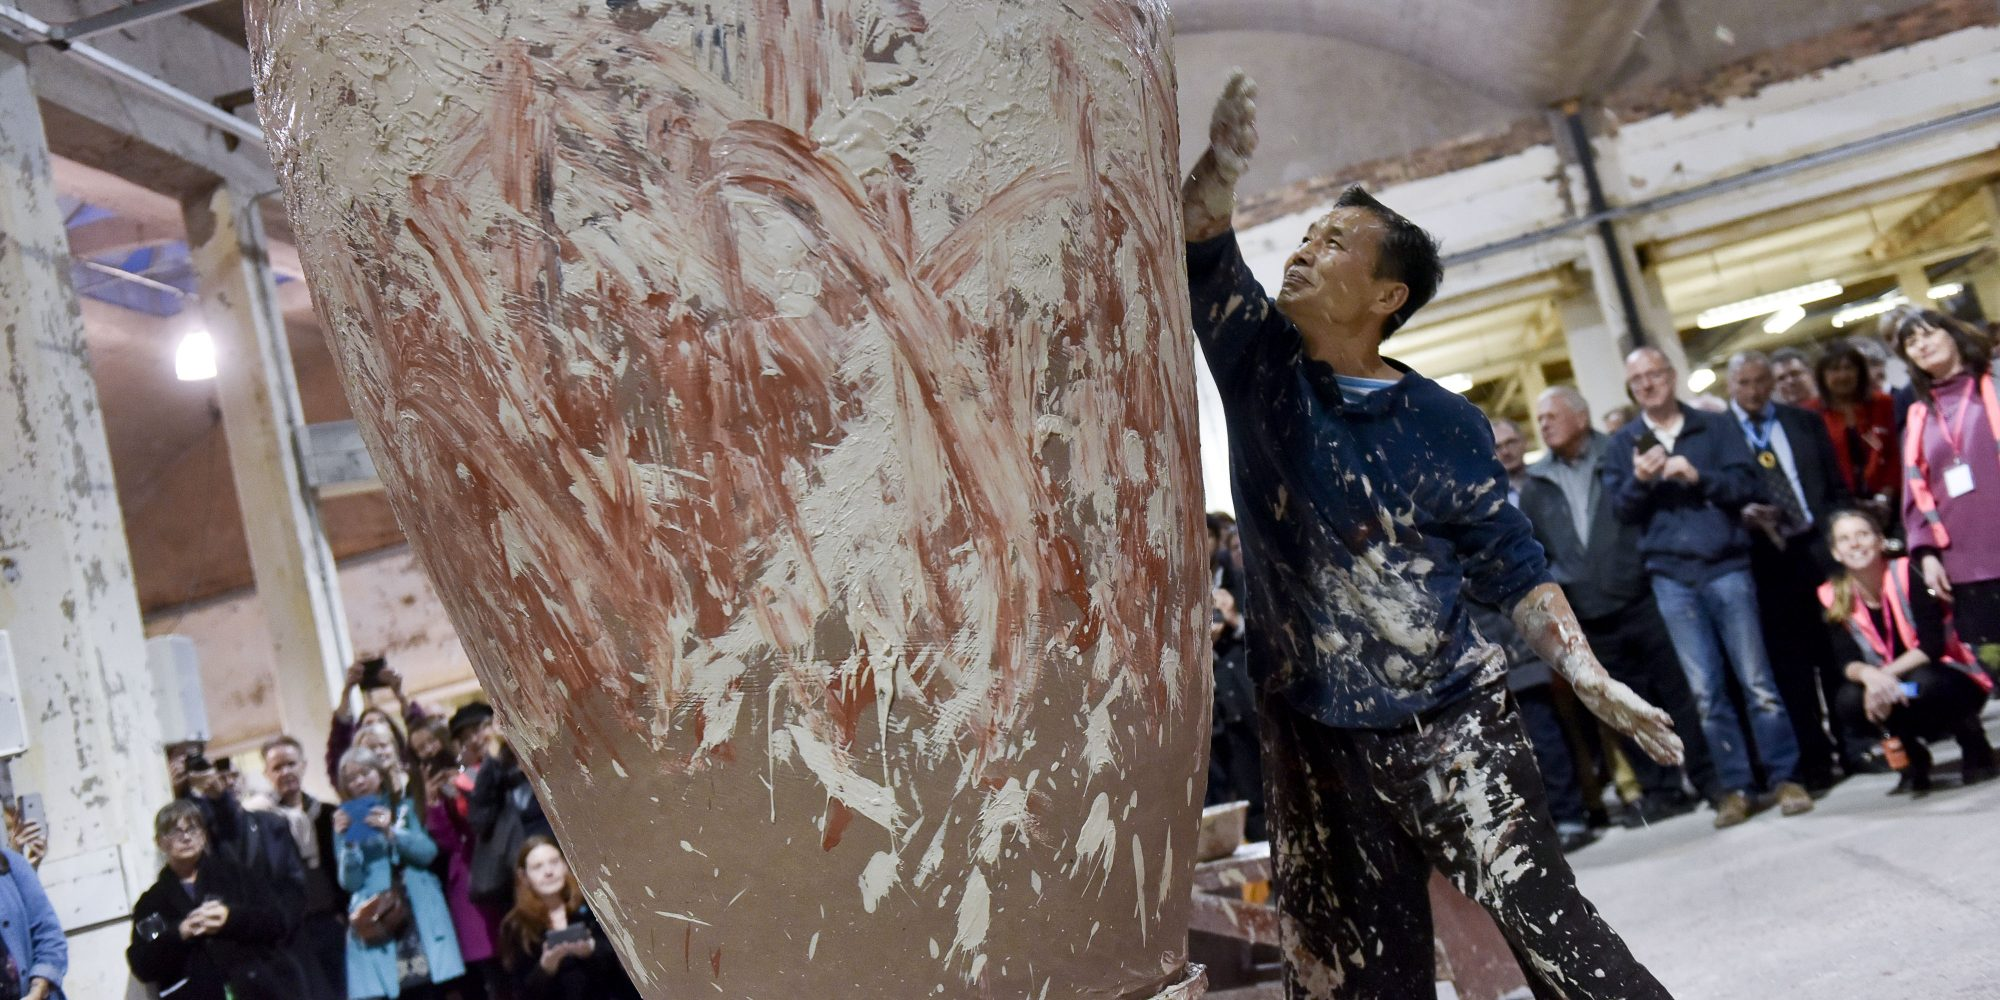 Man covered in plaster, wiping hands on large sculpture and crowd watching in background. Stoke's heritage and tourism organisations come together.